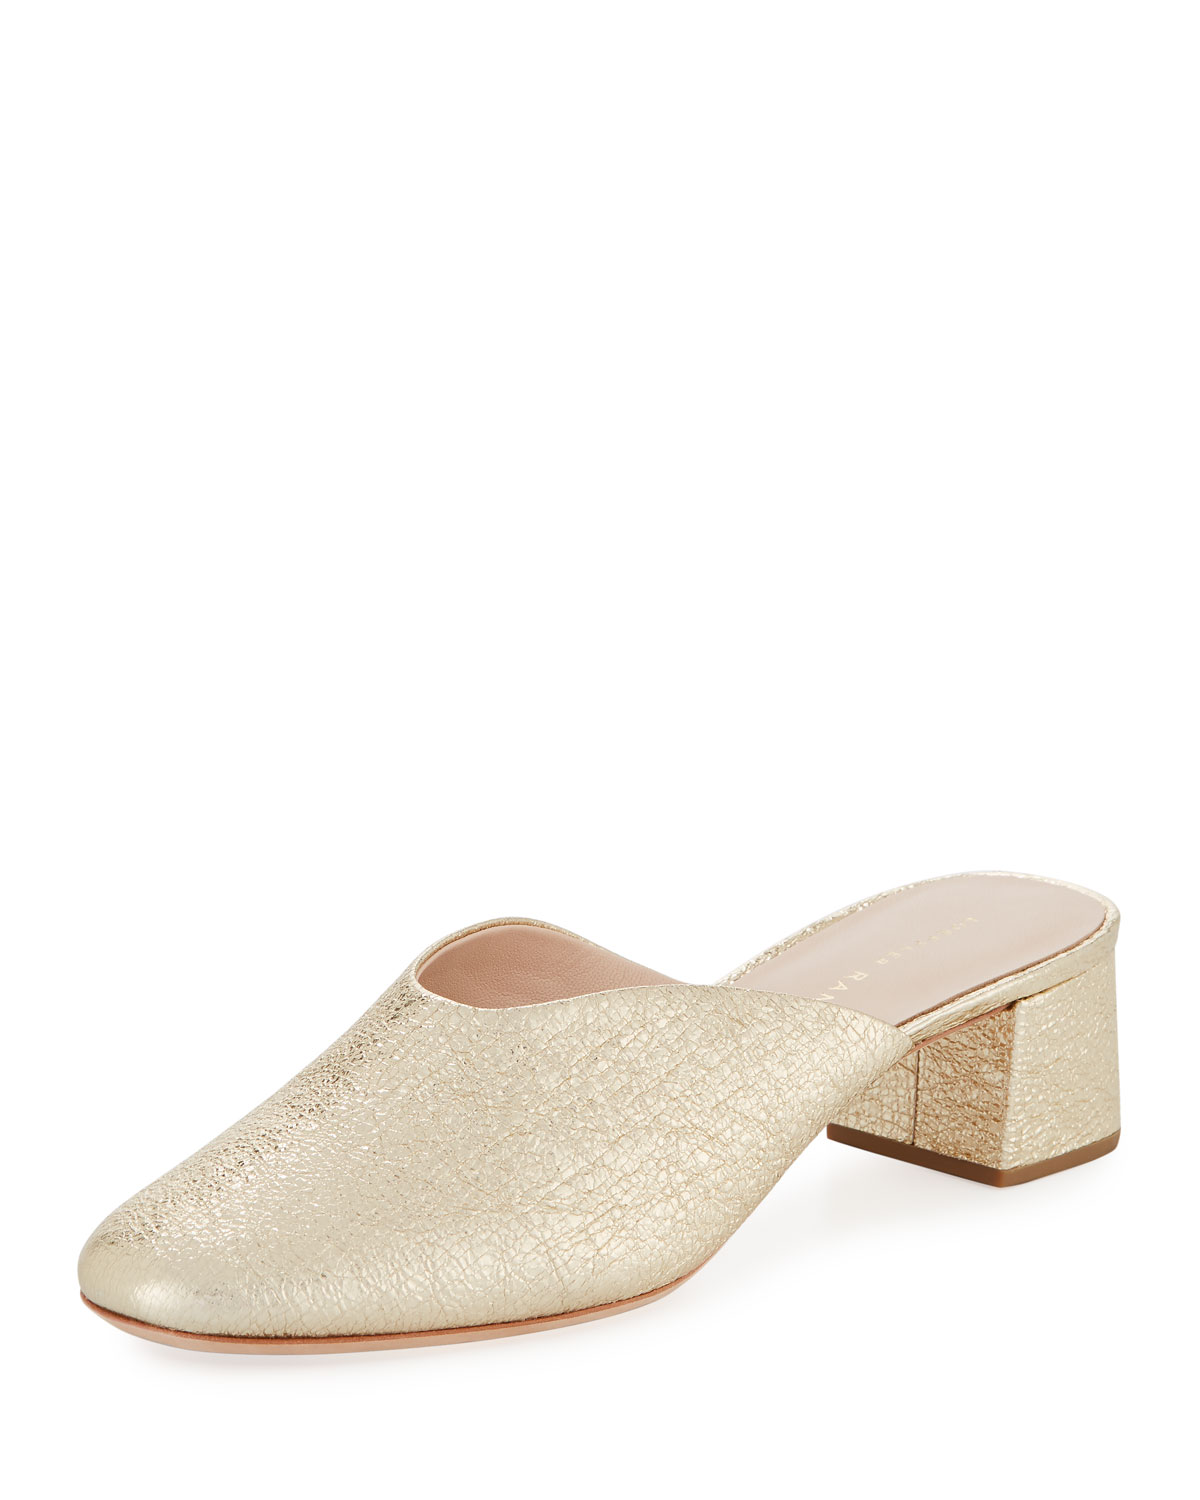 Lulu Metallic Leather Block-Heel Mule Slide